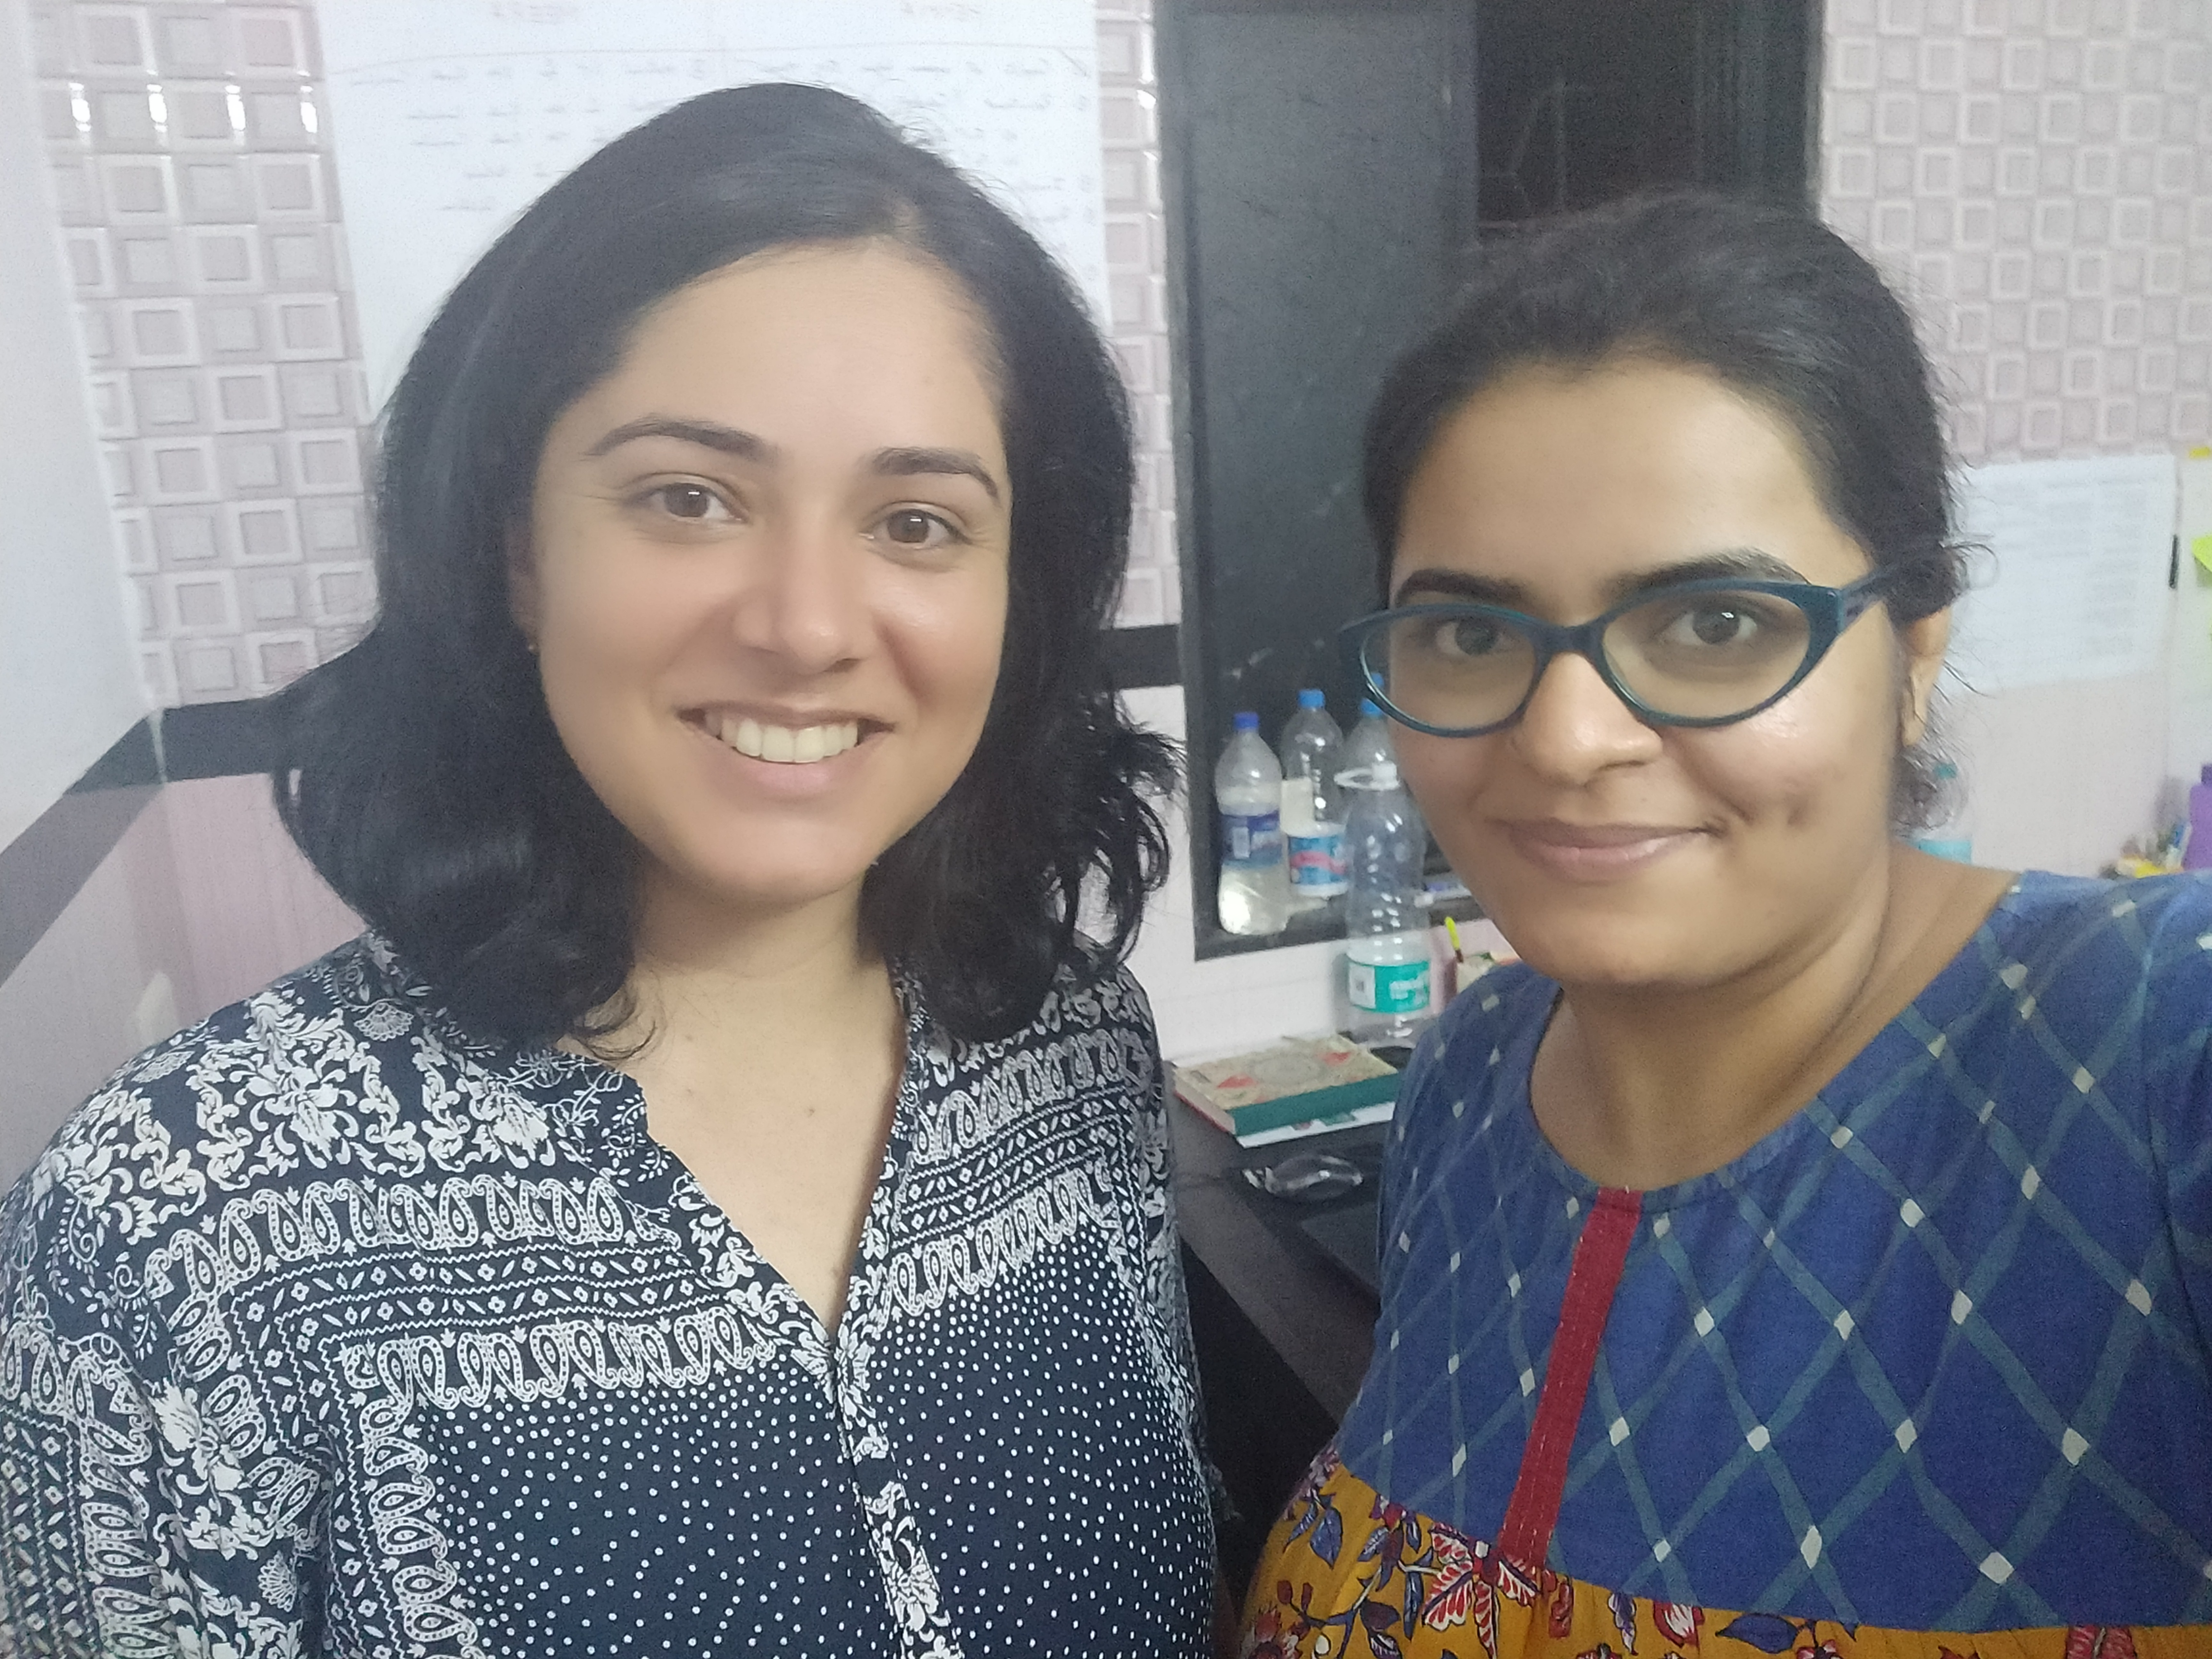 Henna Khan and Meera Rathod, co-founders of Universe Simplified | Image courtesy : Universe Simplified